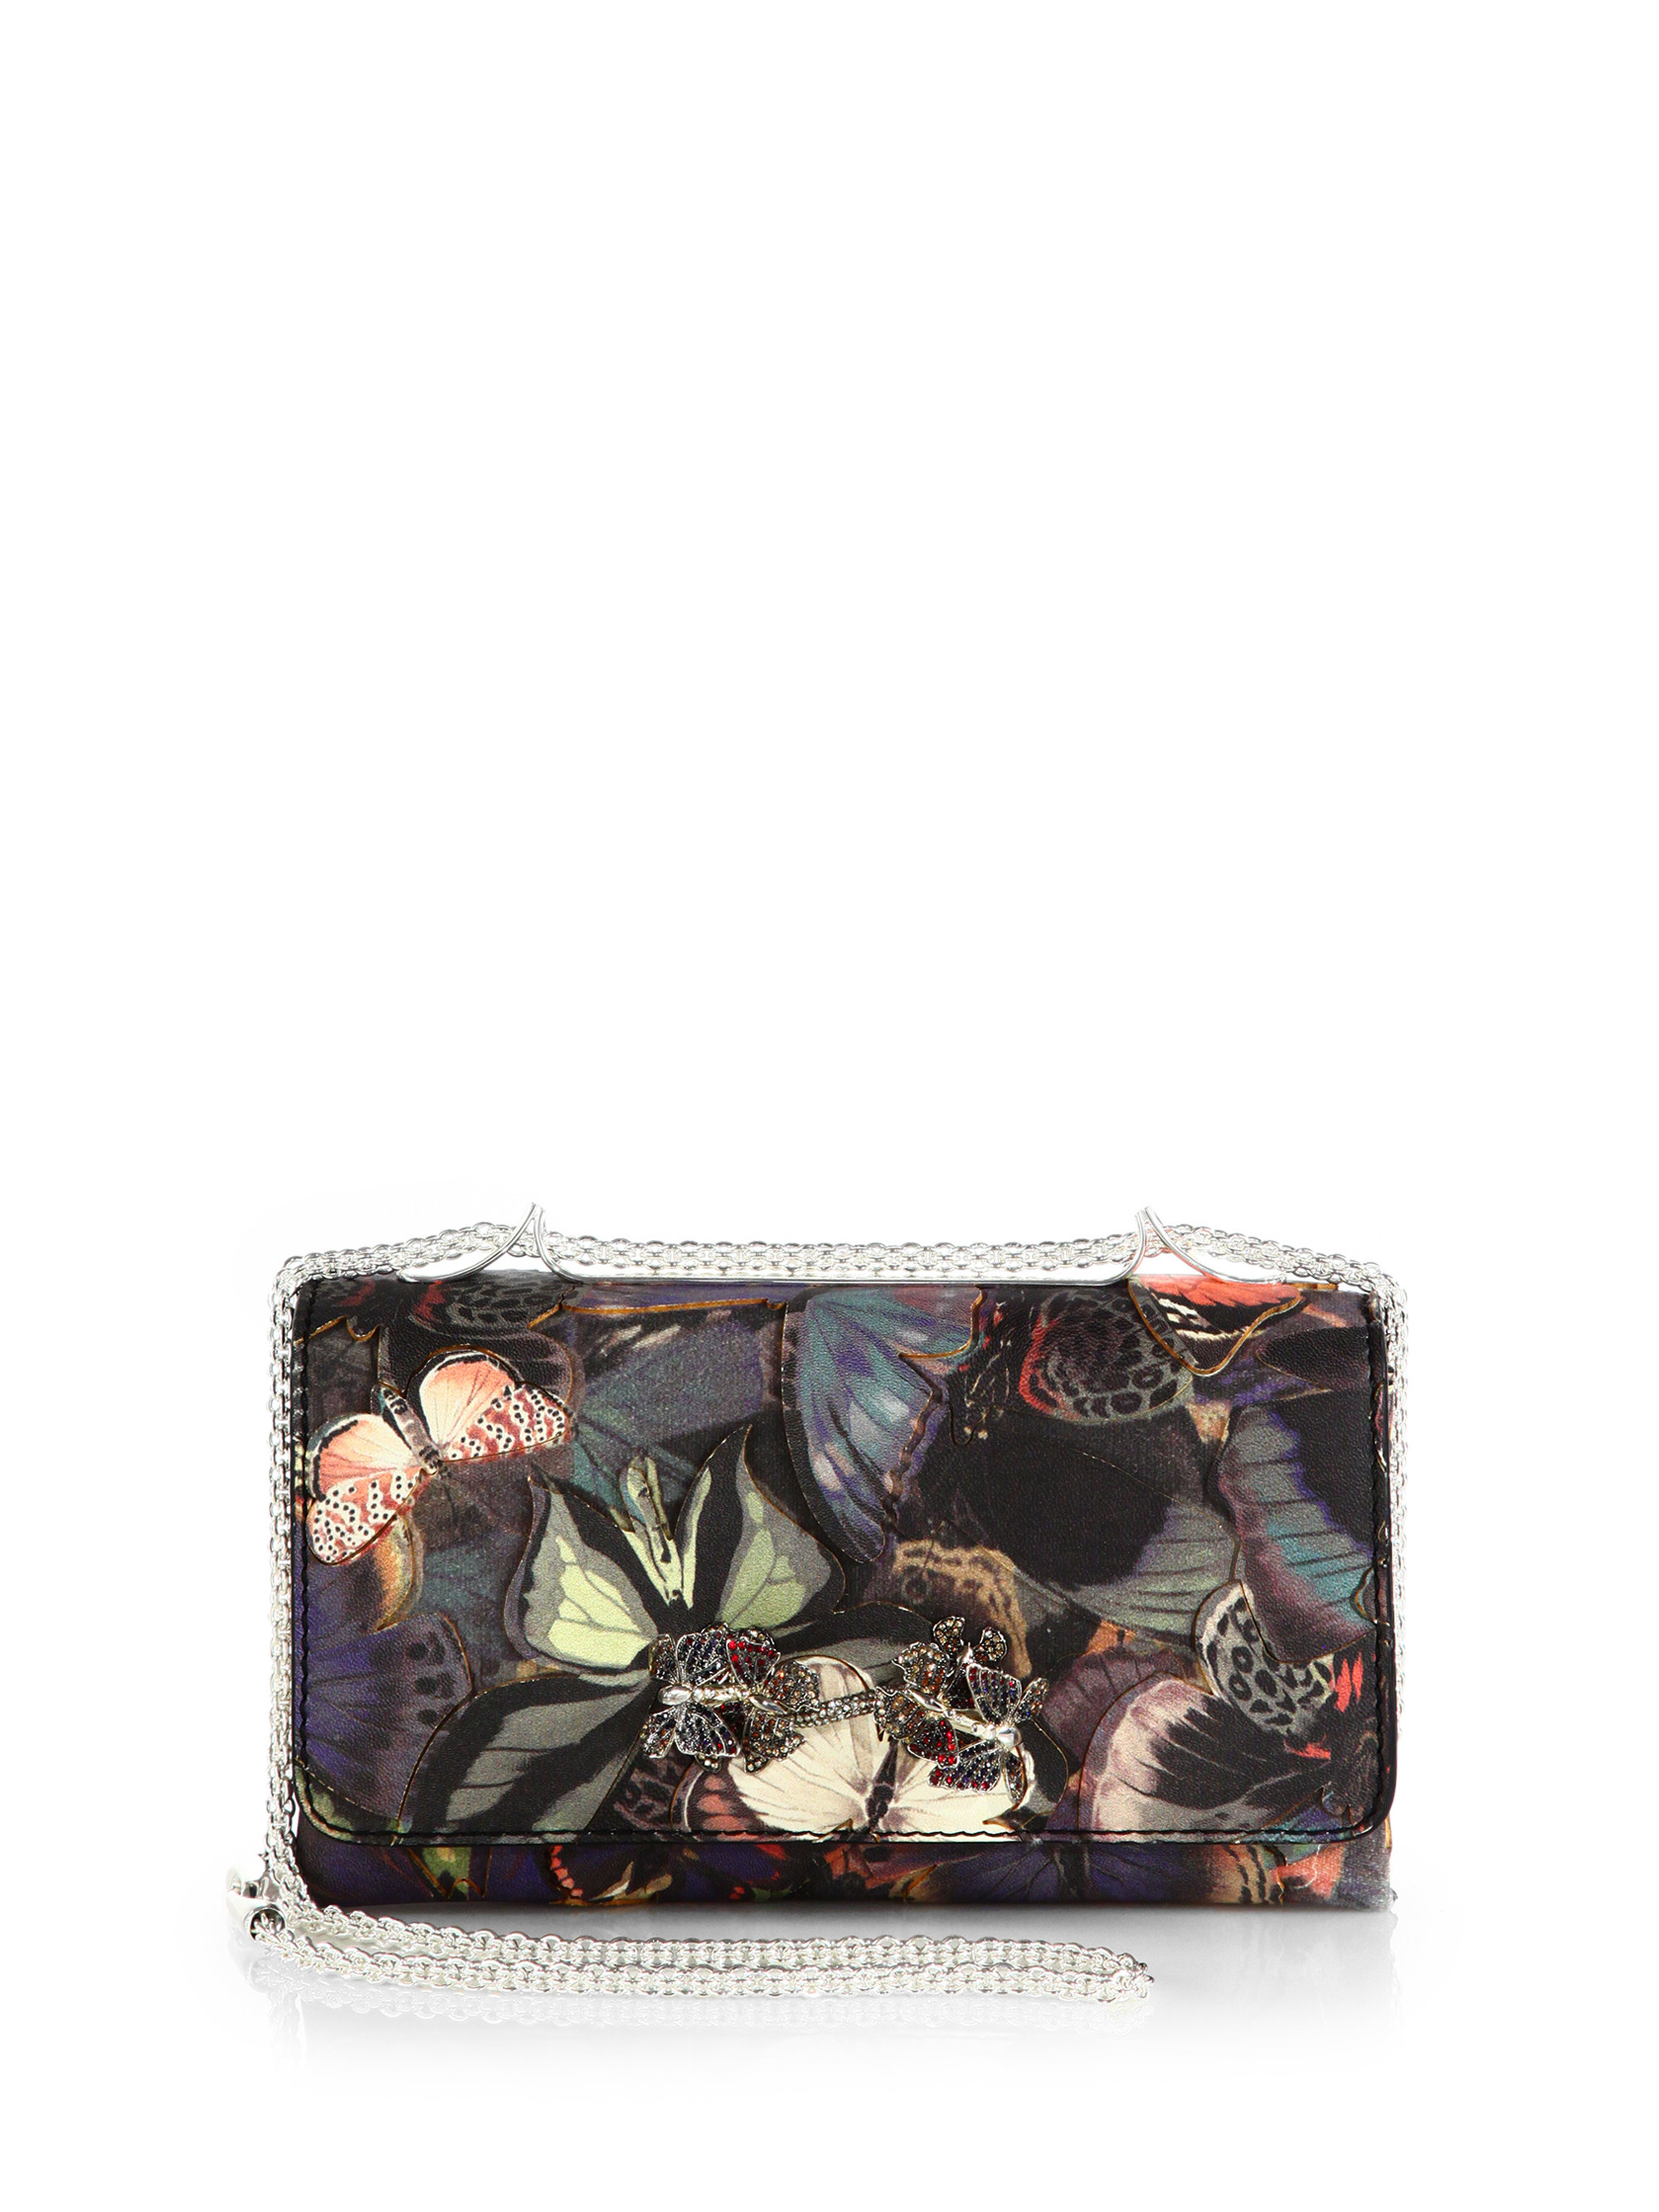 Valentino Jeweled Butterfly Leather Flap Bag in Multicolor | Lyst